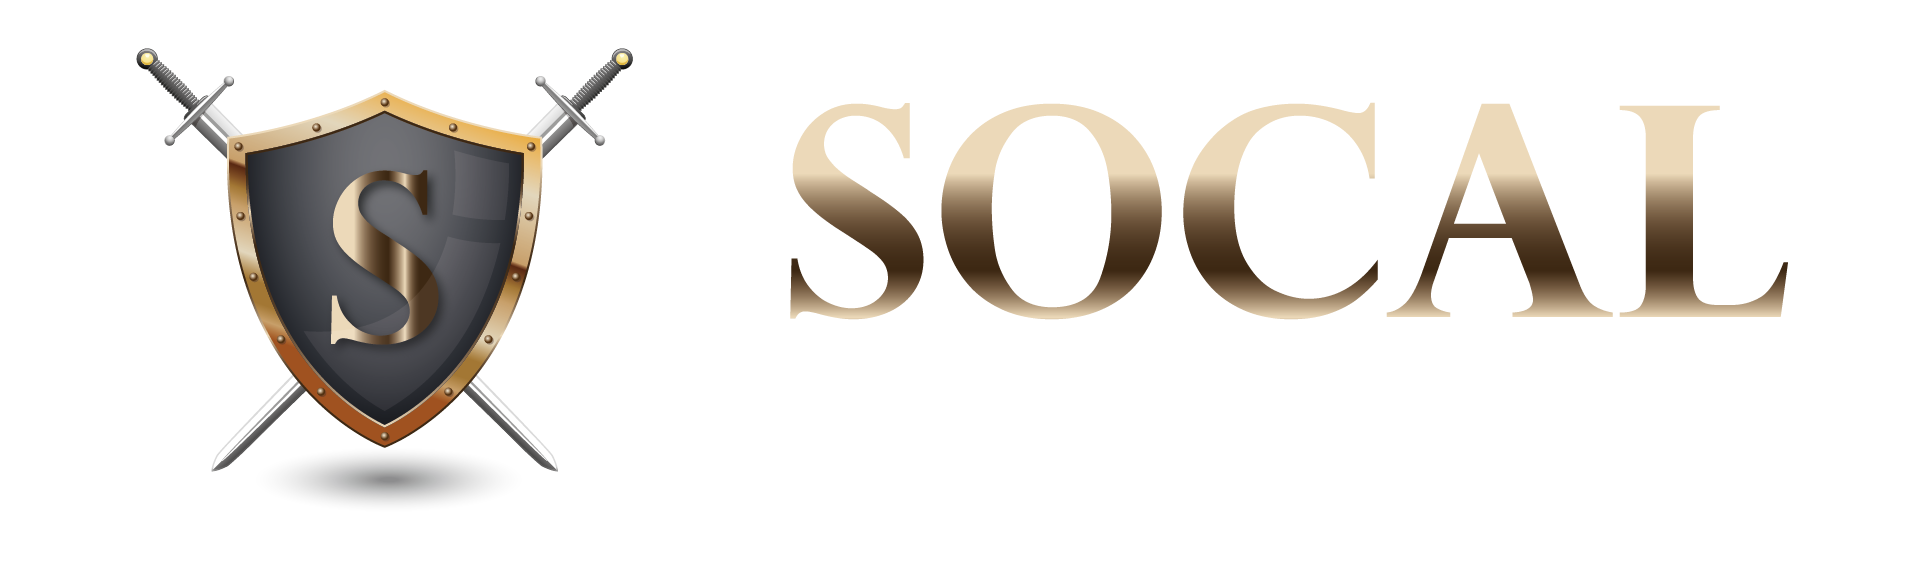 logotipo_socal_Prancheta 1